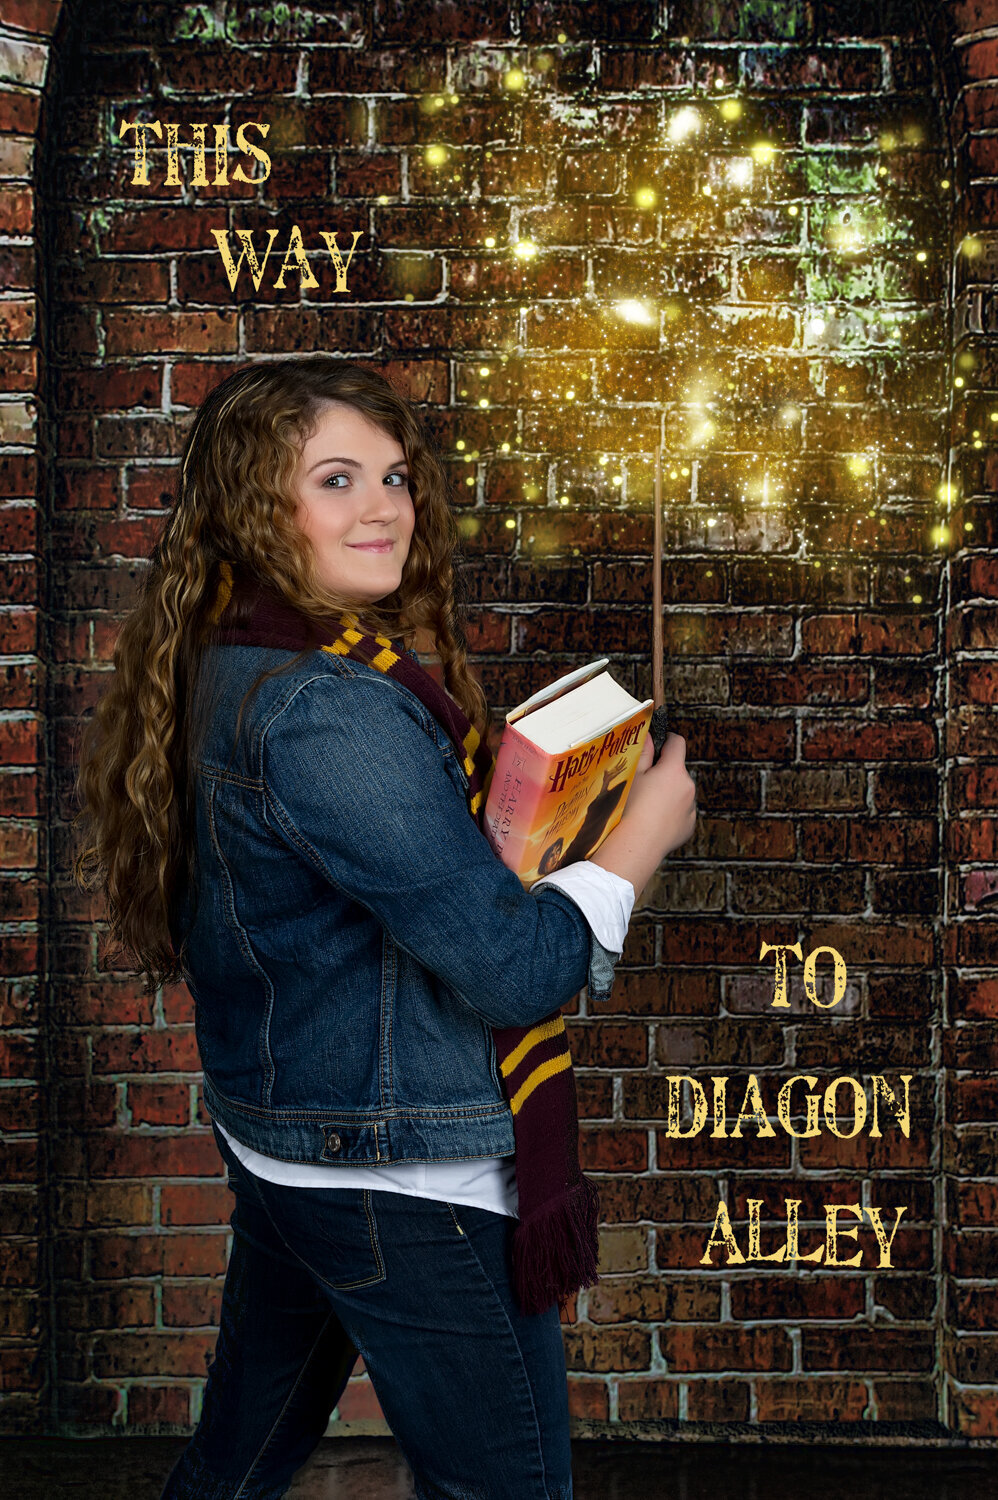 diagon alley senior photo senior girl wand harry potter